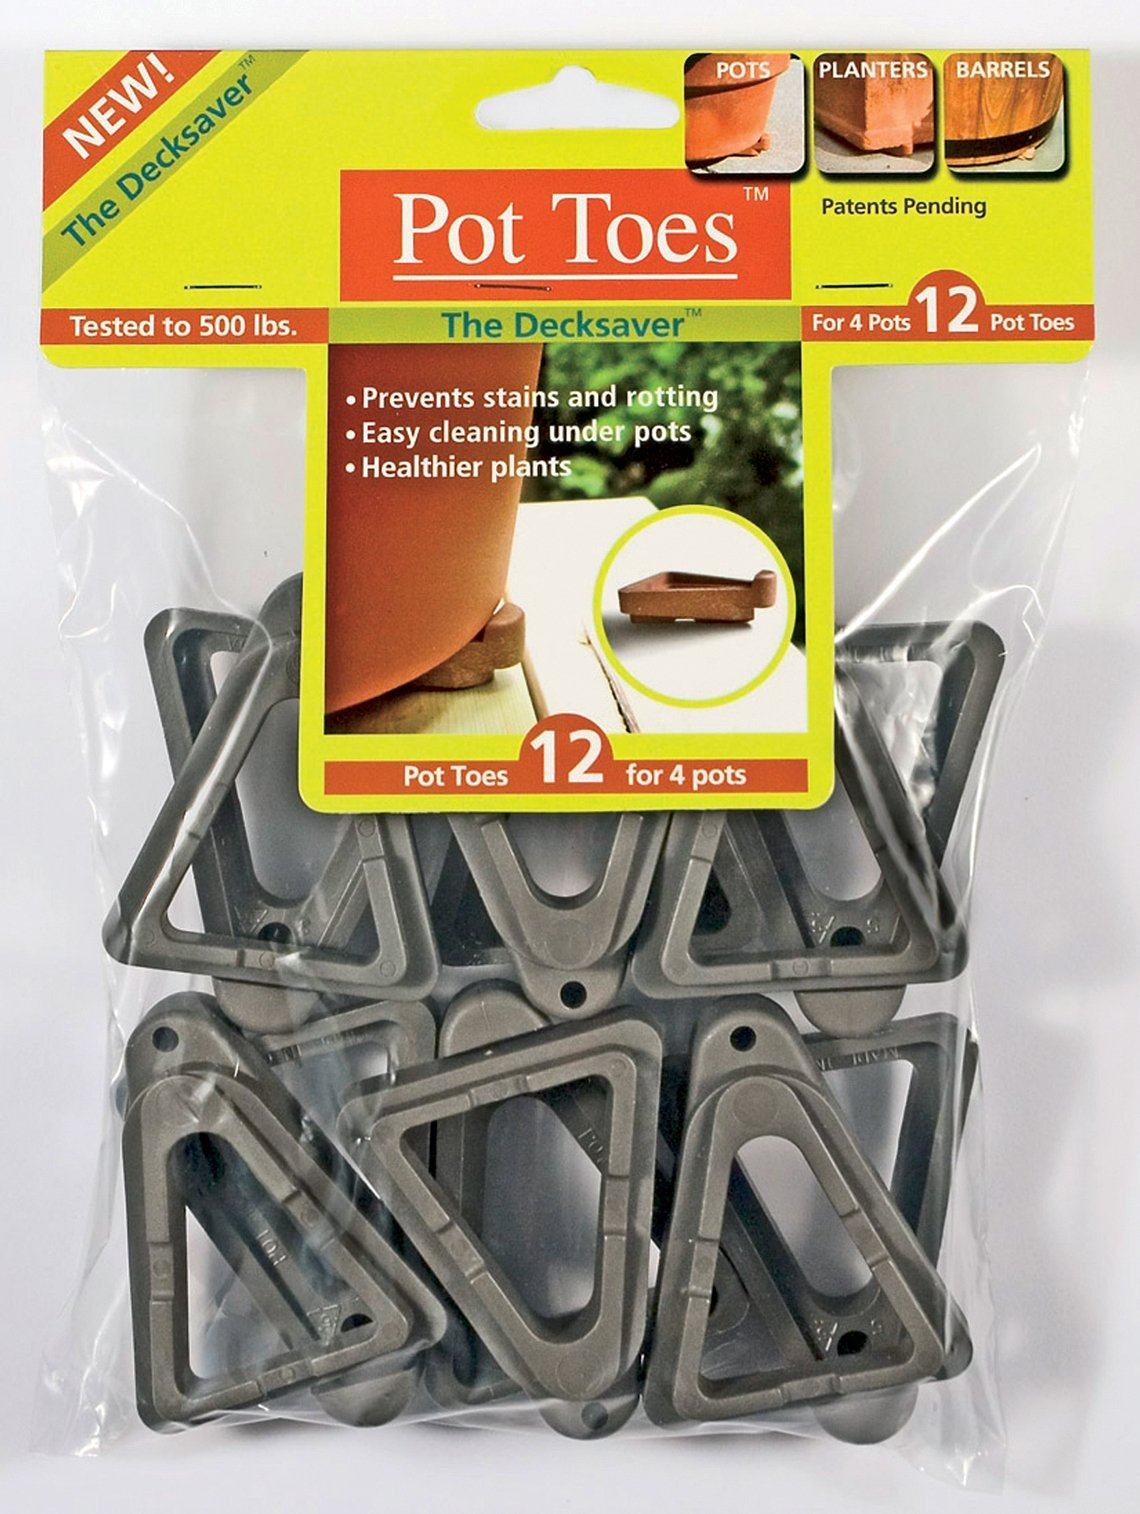 IGC Cartanna Plantstand PT-12CHHT 12-Pack Dark Gray Pot toes by IGC Cartanna